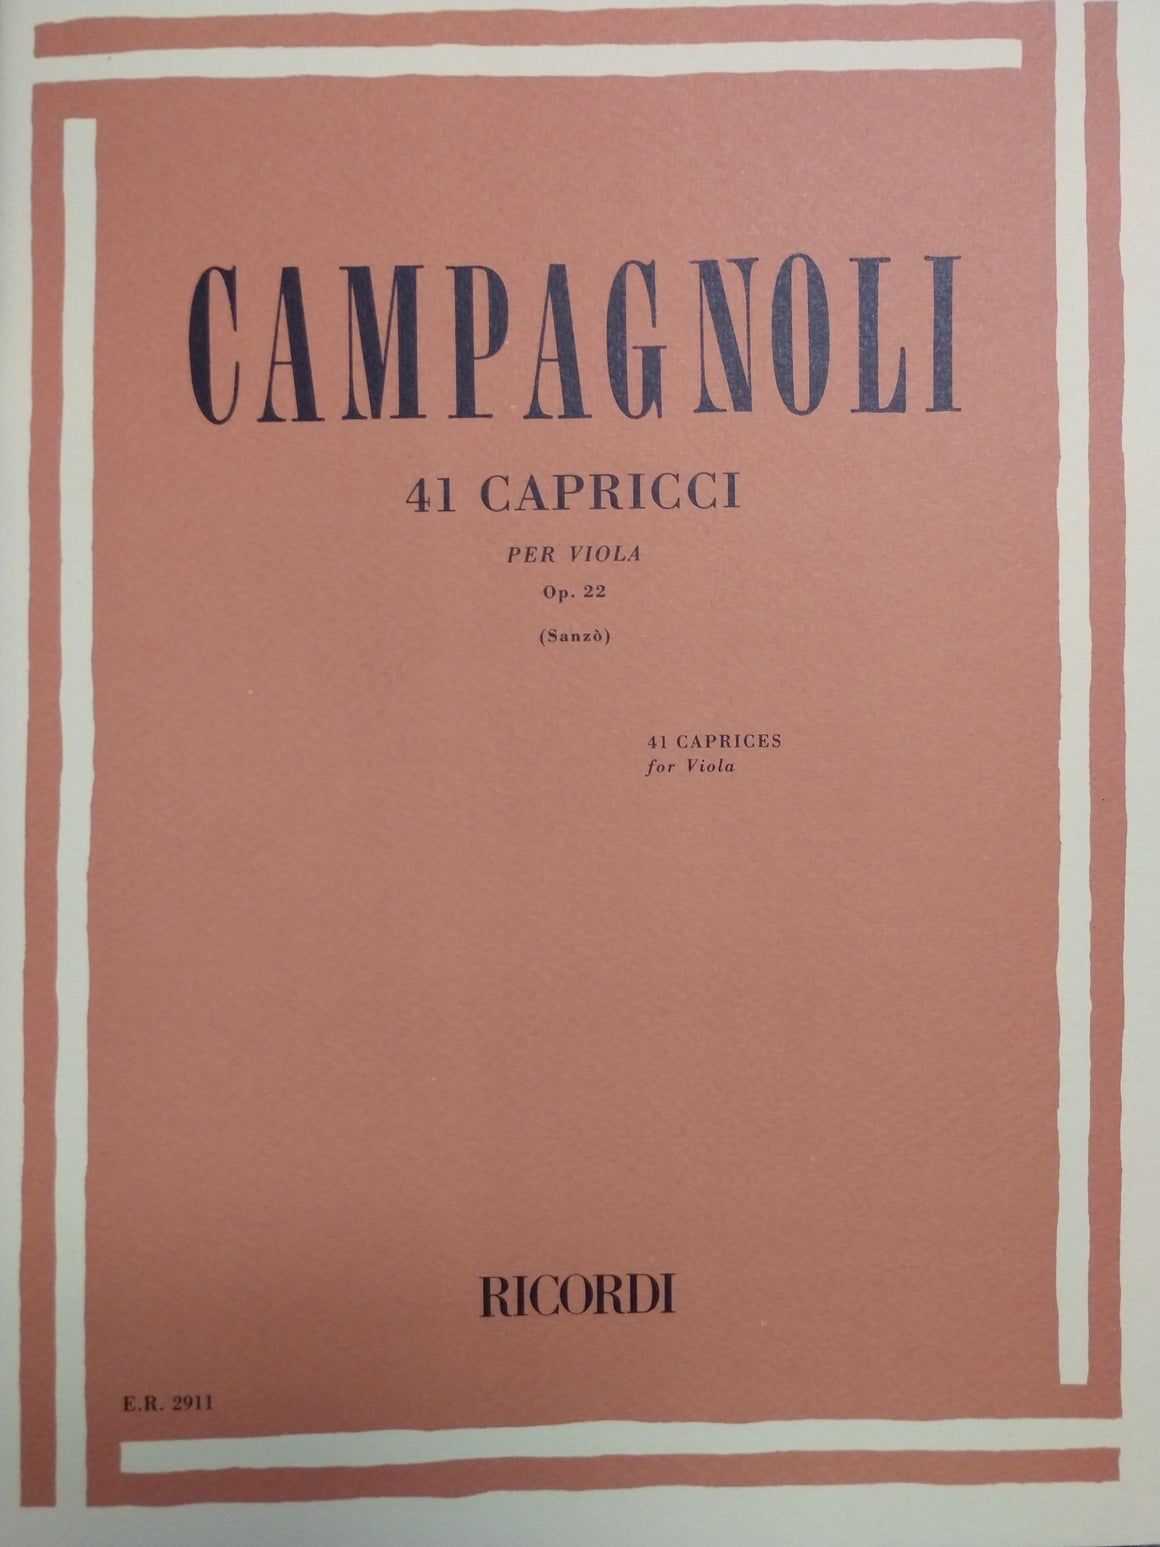 41 Caprices for Viola, Op. 22 - Campagnoli